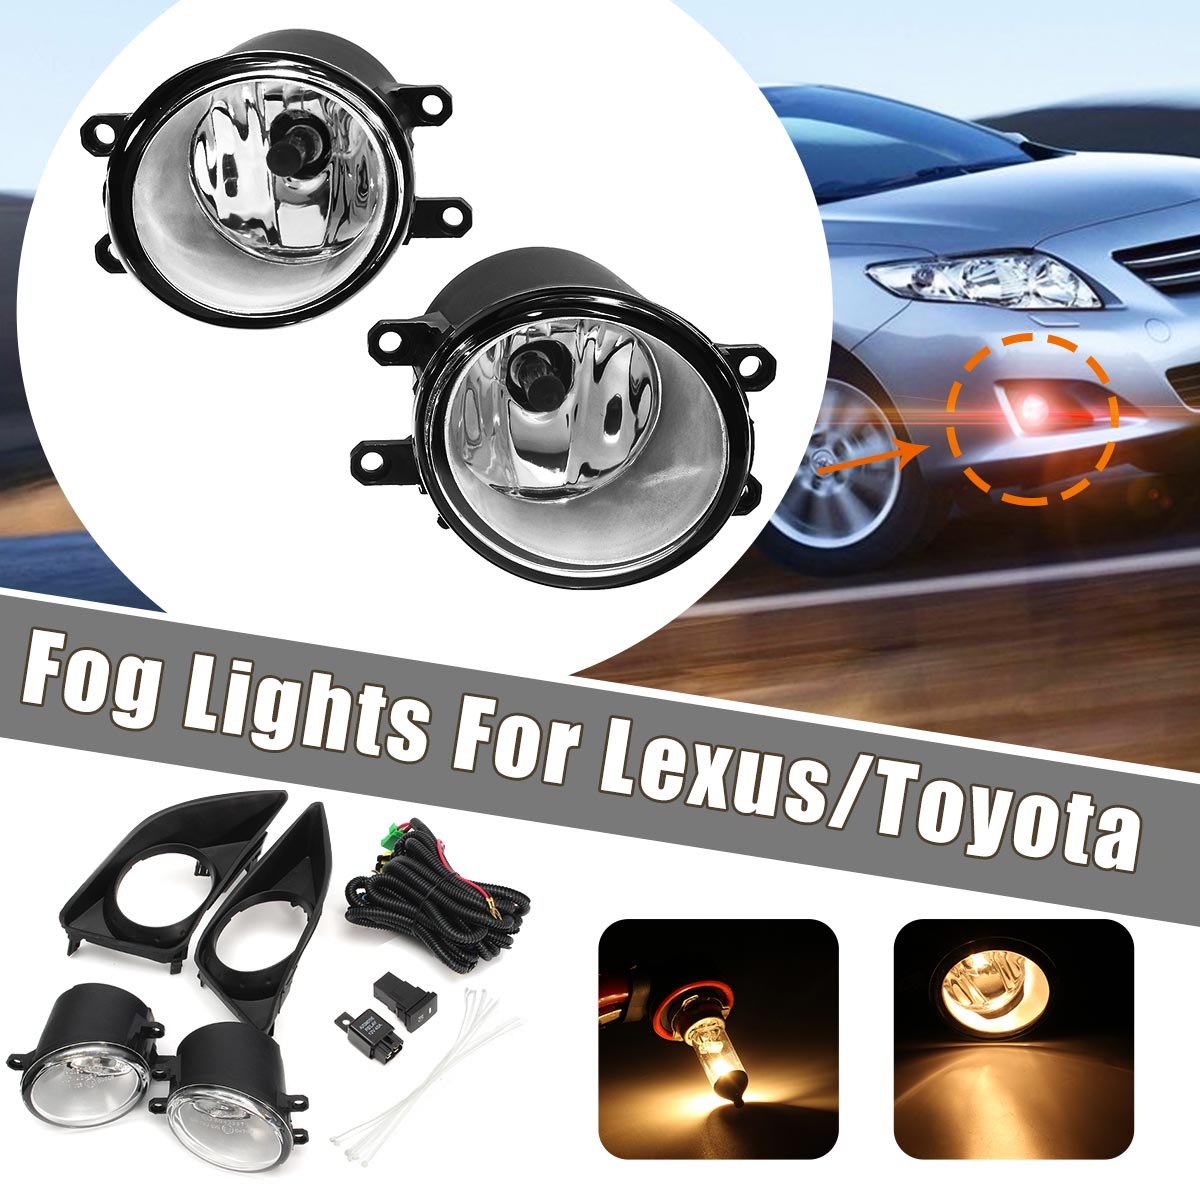 2Pcs H11 Car Front Bumper Left/Right Fog Light Lamp+Black Grille Covers Switch H11 Bulbs For Toyota Corolla 2008-2010 2pcs auto right left fog light lamp car styling h11 halogen light 12v 55w bulb assembly for citroen c4 coupe la 2004 2008 2010